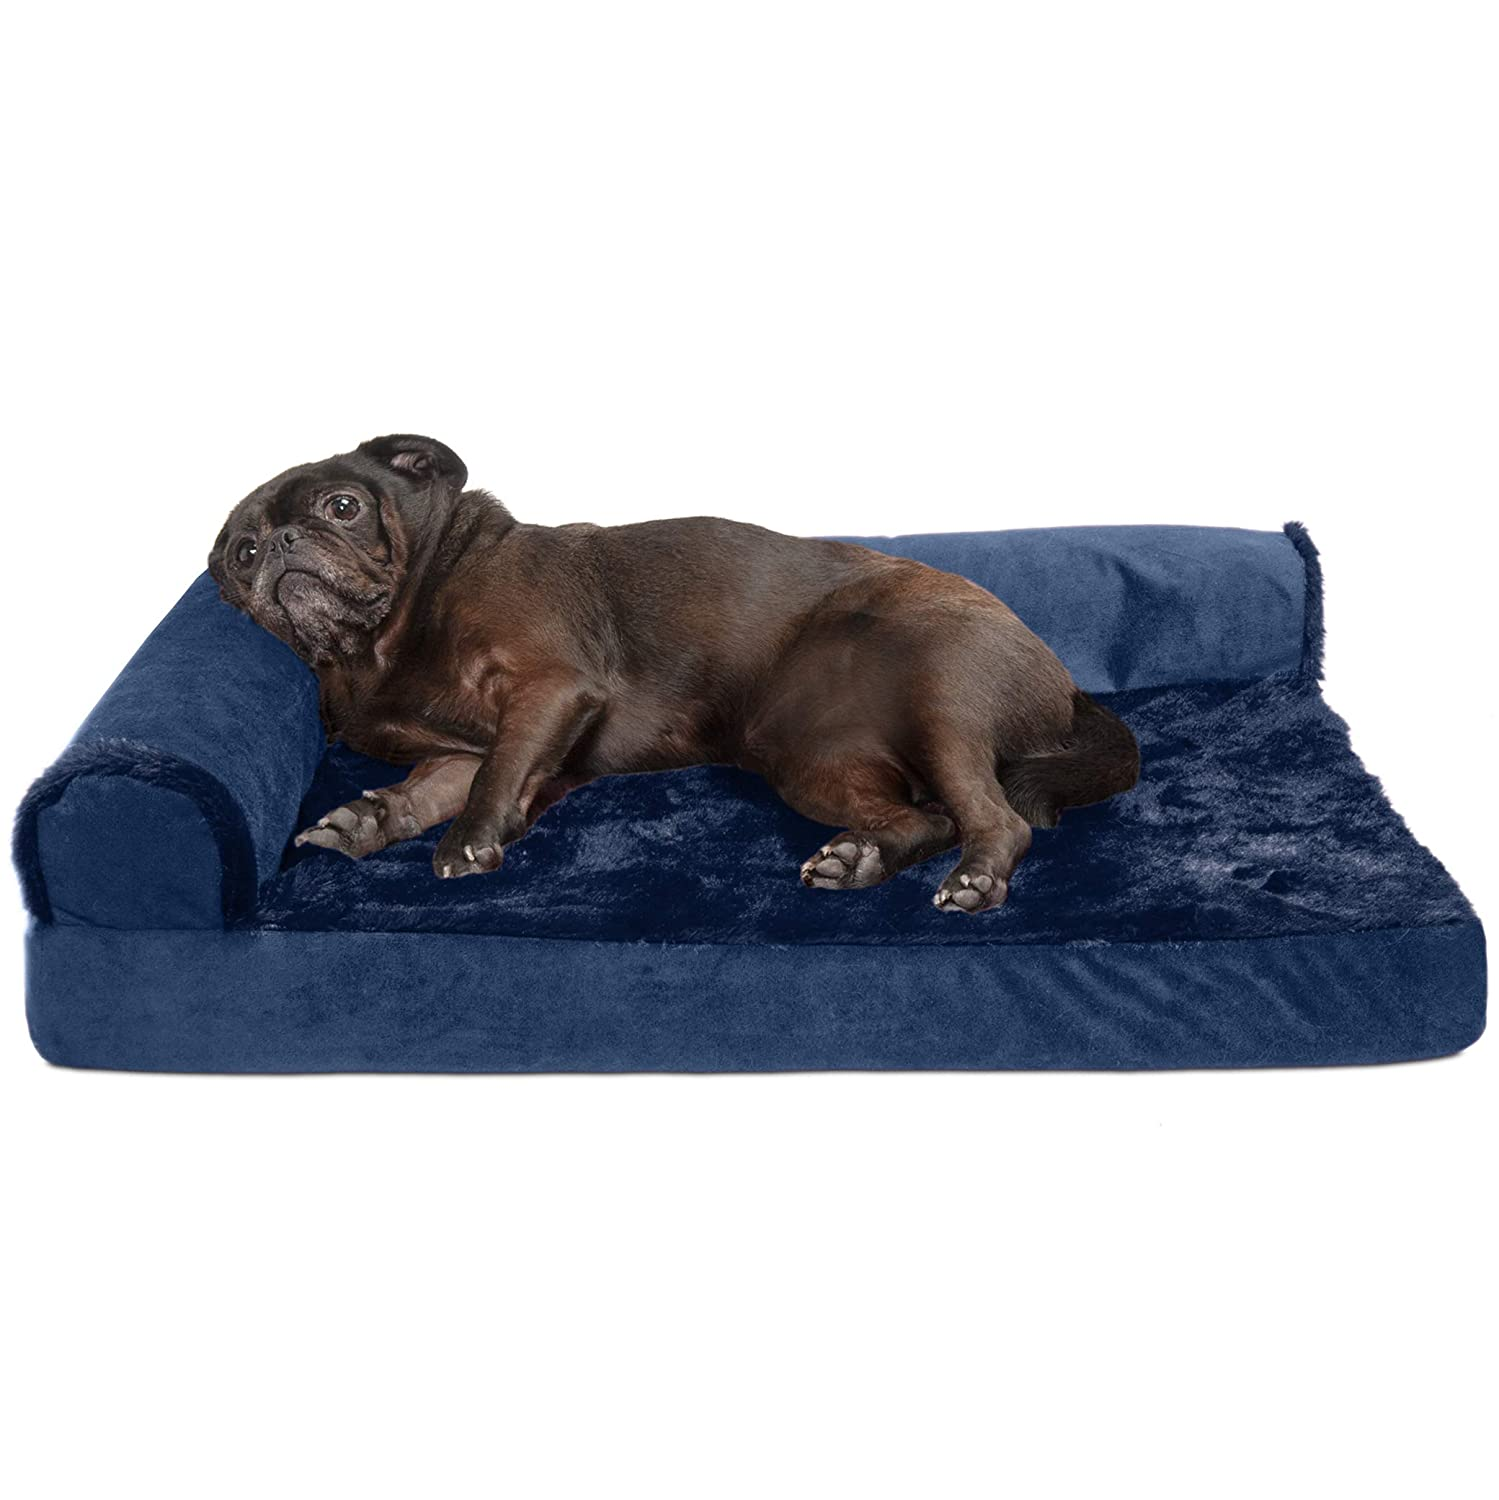 Furhaven Pet Dog Bed   Deluxe Cooling Gel Memory Foam Orthopedic Plush & Velvet L-Shaped Lounge Pet Bed for Dogs & Cats, Deep Sapphire, Medium